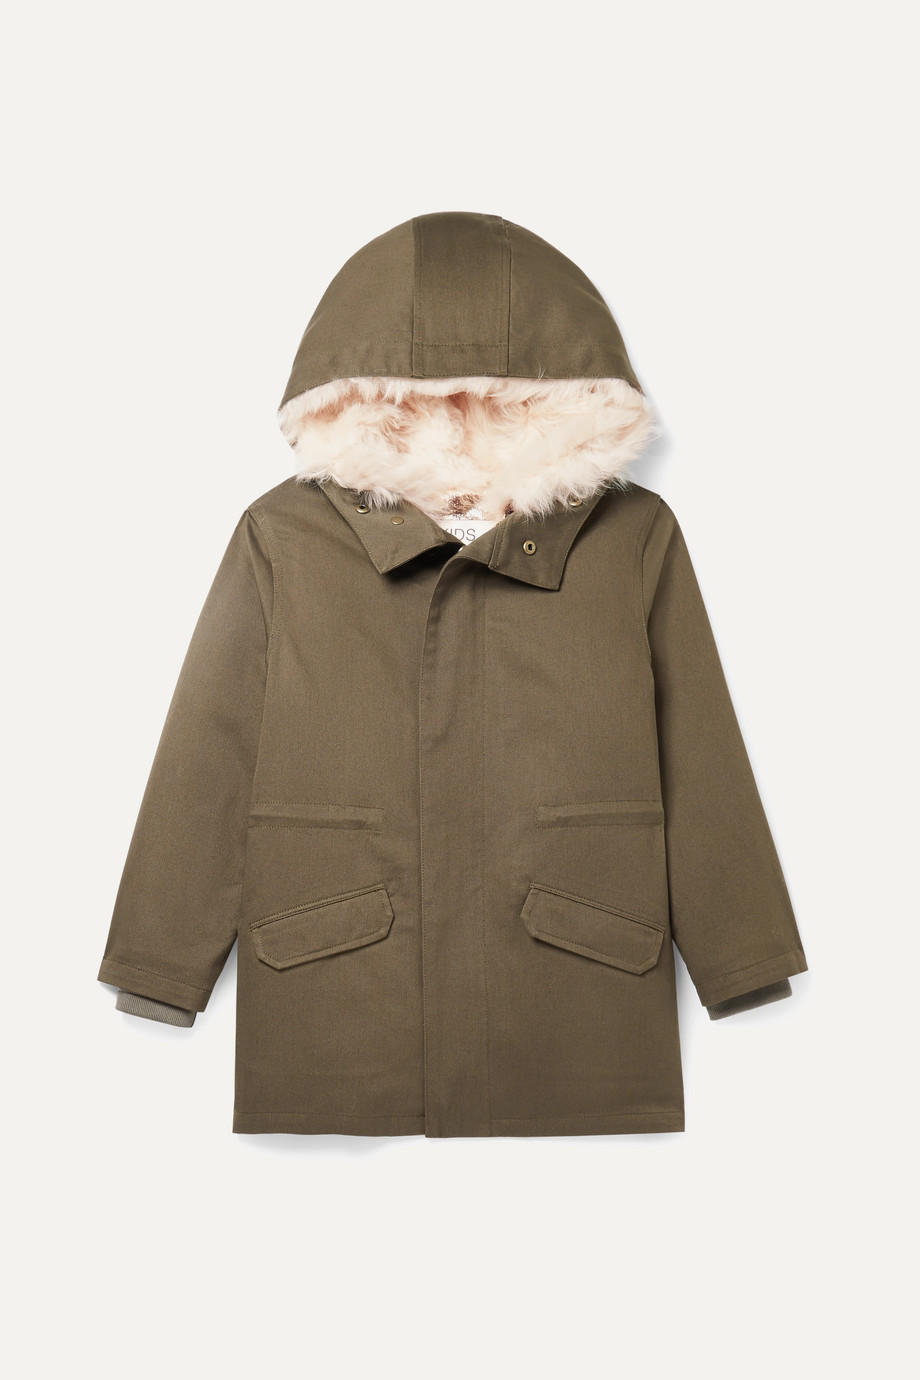 Yves Salomon Kids Age 8 - 12 hooded metallic shell and faux shearling-lined cotton-twill parka